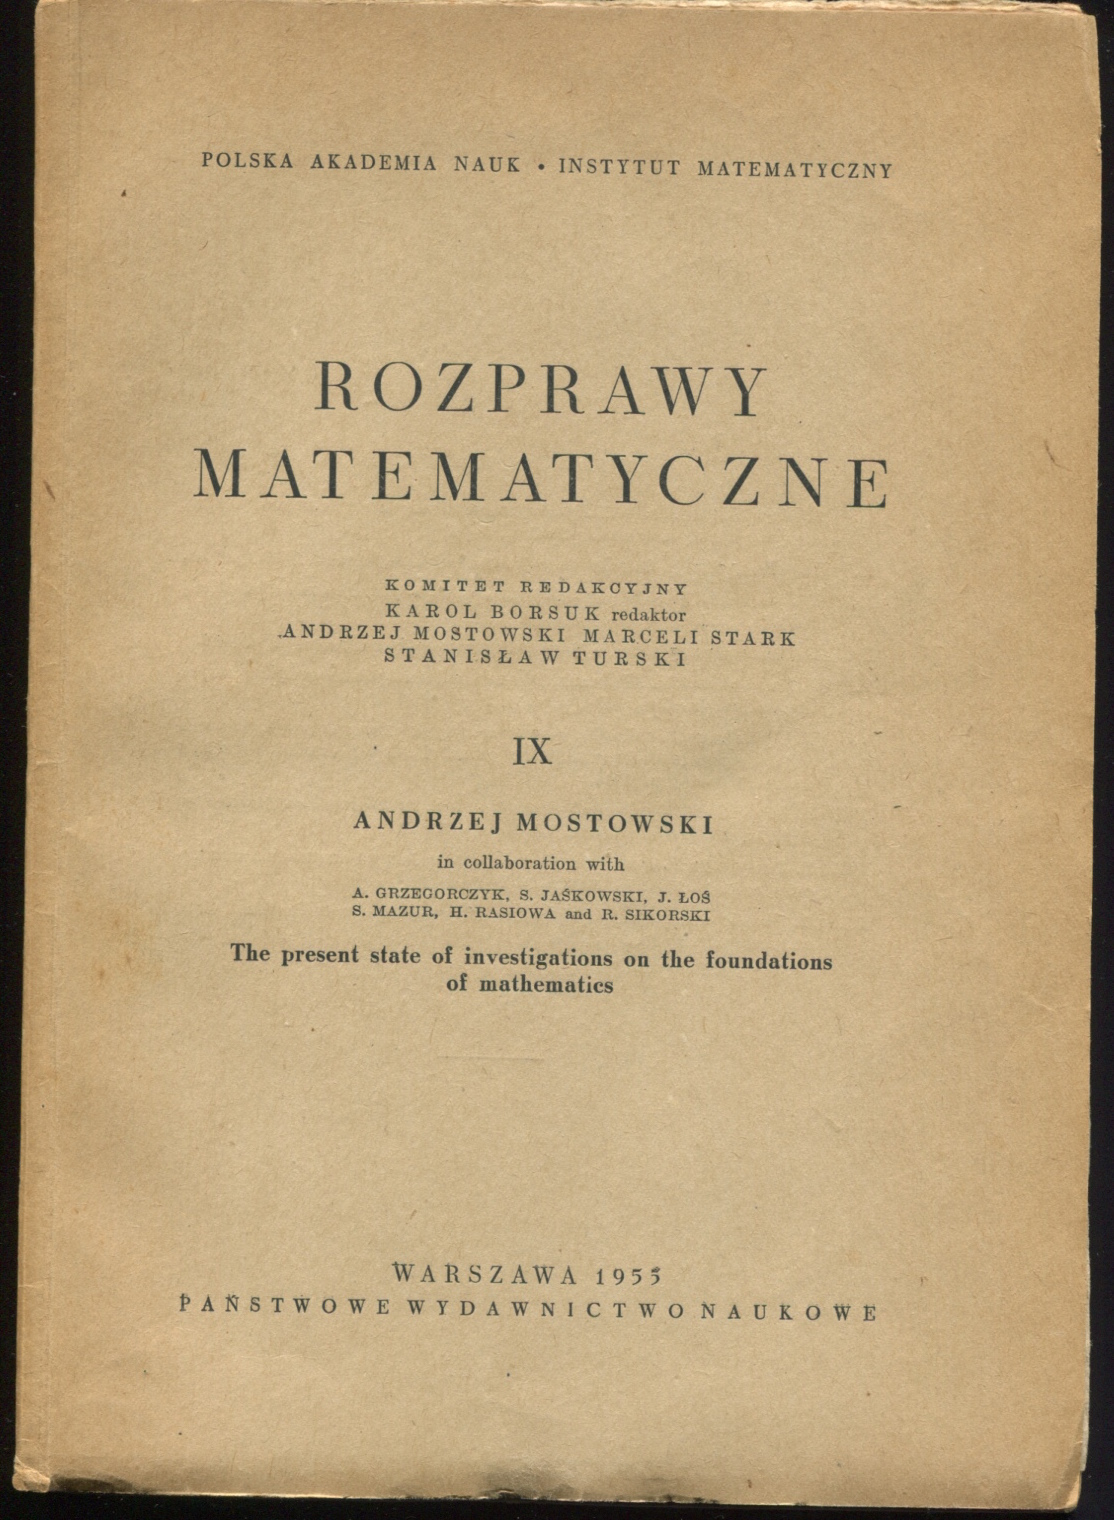 Rozprawy Matematyczne IX. The Present State of Investigations on the Foundations of Mathematics.